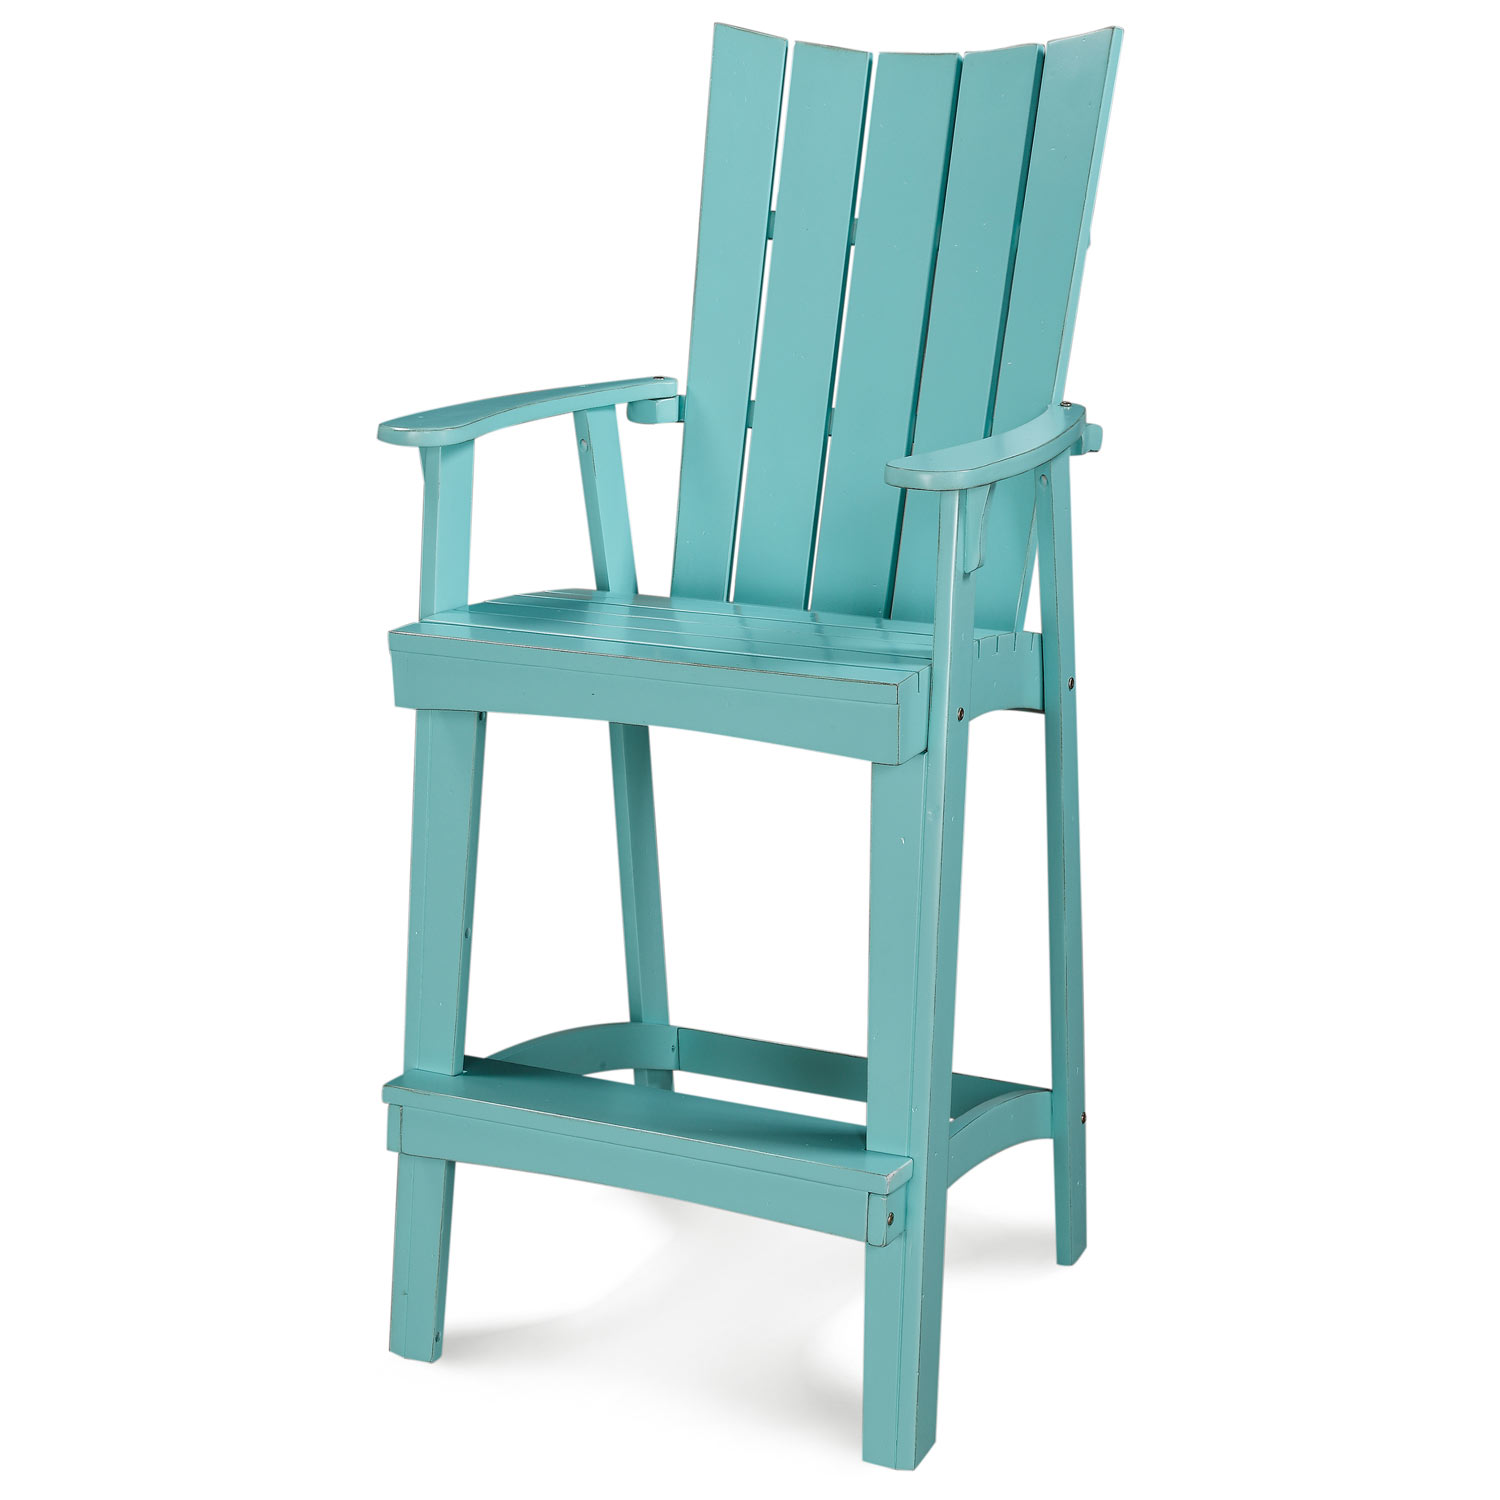 "30"" Patio Adirondack Bar Stool - Rustic, Reversed Curve Back, Caribbean Dream Turquoise - CHIC-CRF-3BS30-CD"